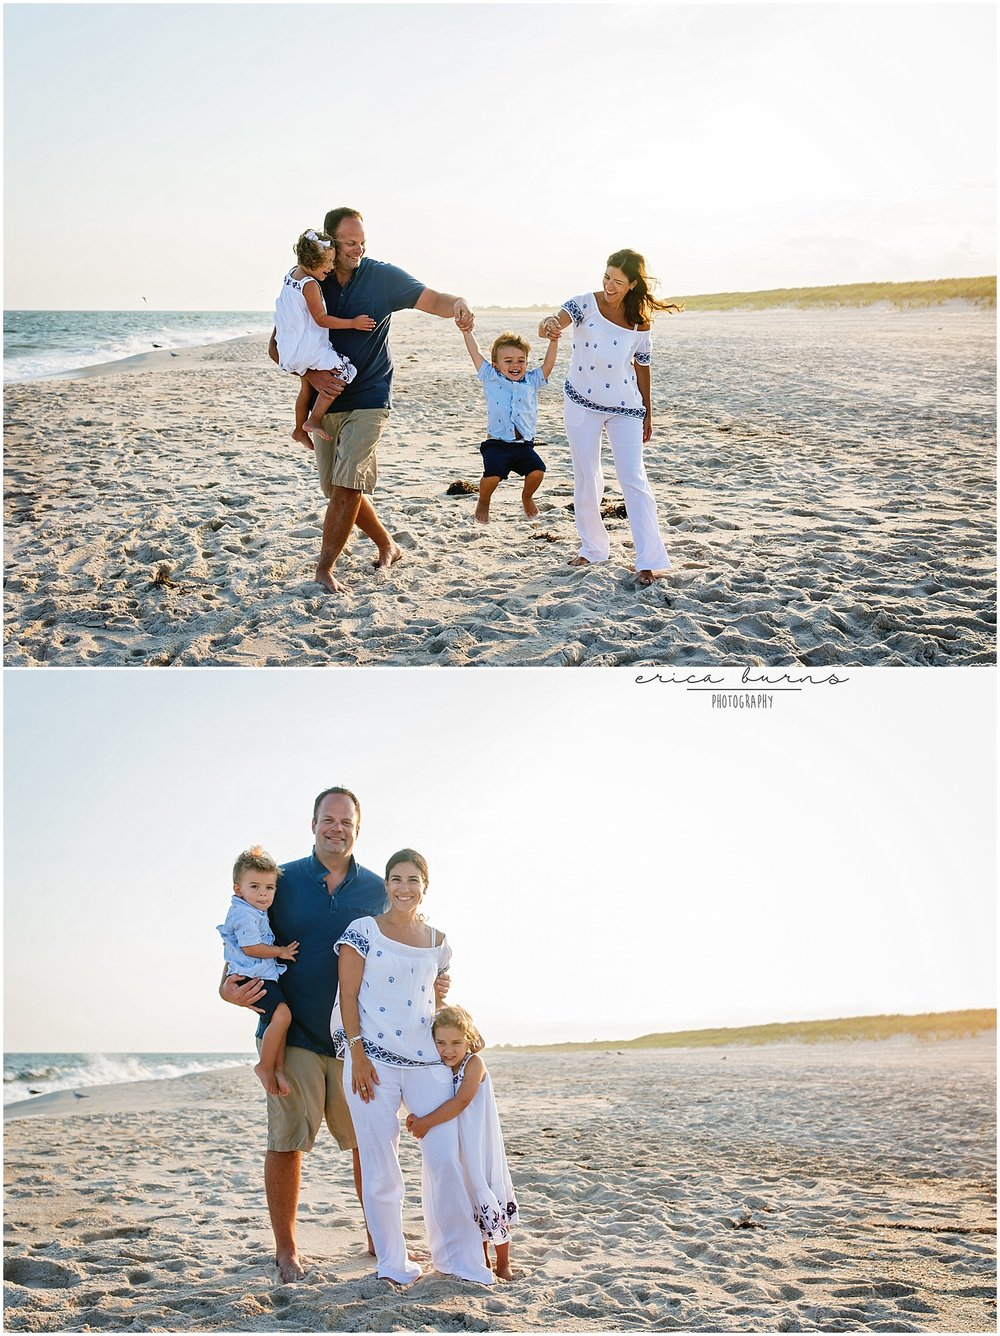 Erica Burns Photography | Long Island Photographer_0237.jpg